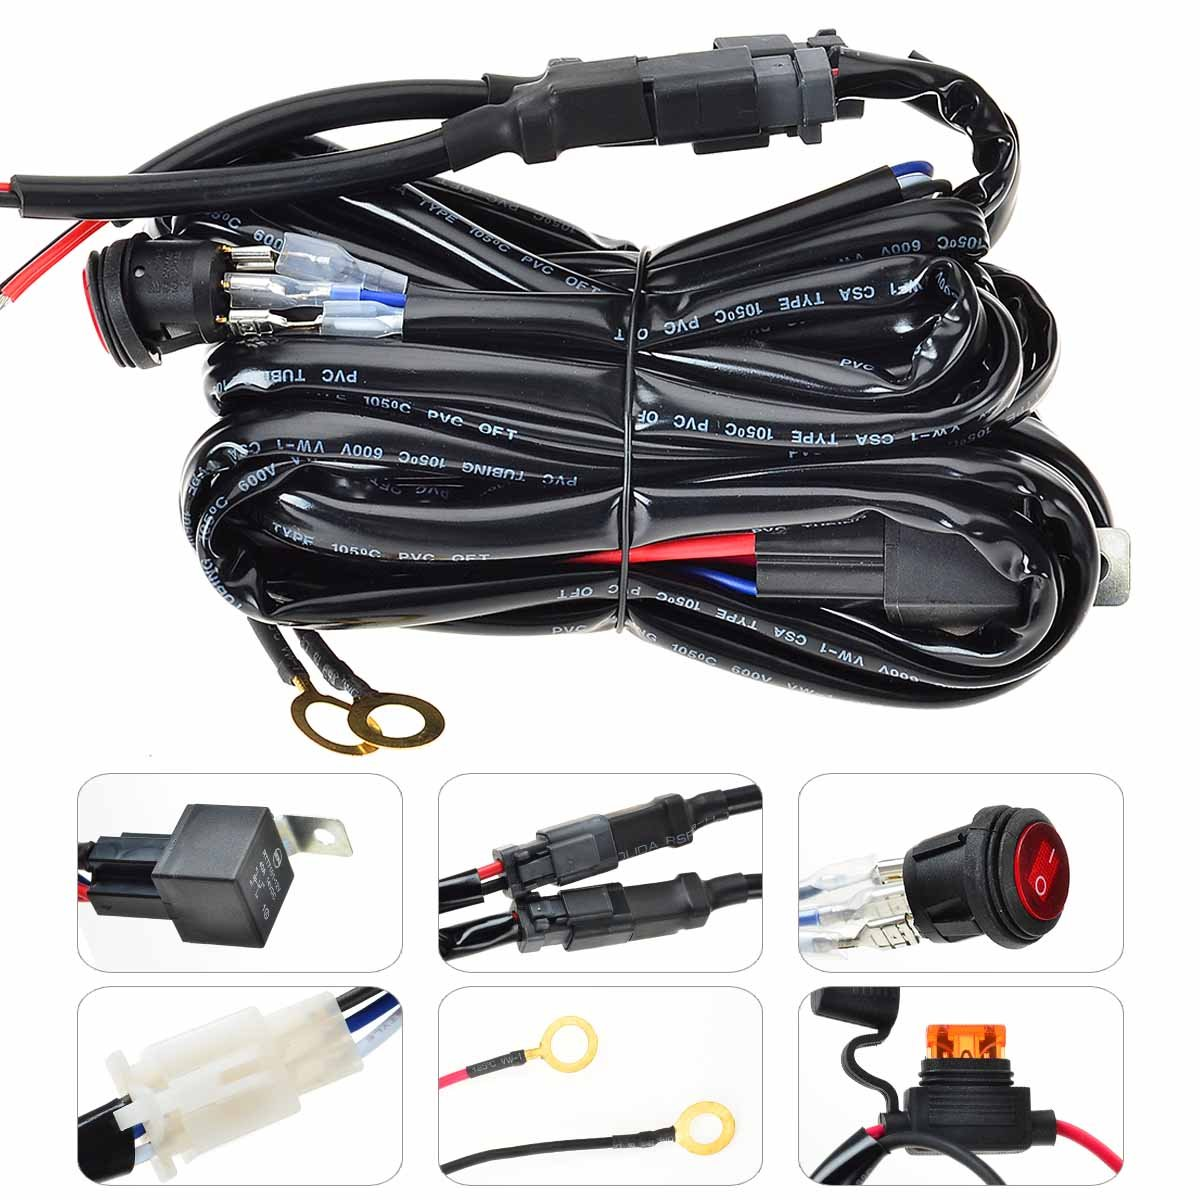 1 Lead 9ft Kawell LED Wiring Harness Include Switch Kit Suppot 300W LED Light Bar Wiring Harness and On//Off Waterproof Switch